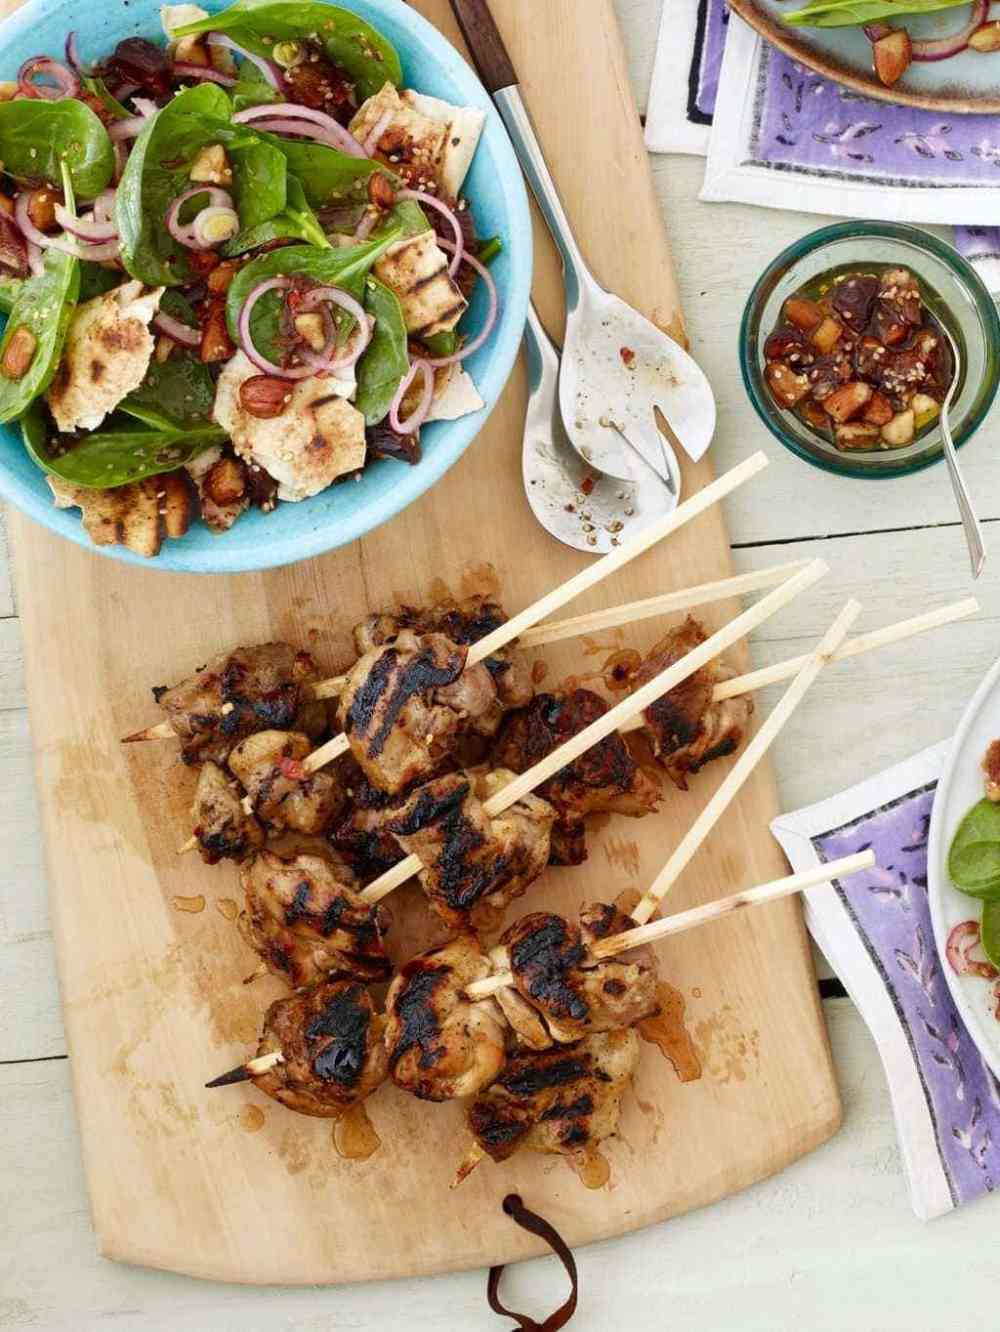 delicious and authentic kabob recipes you can make at home